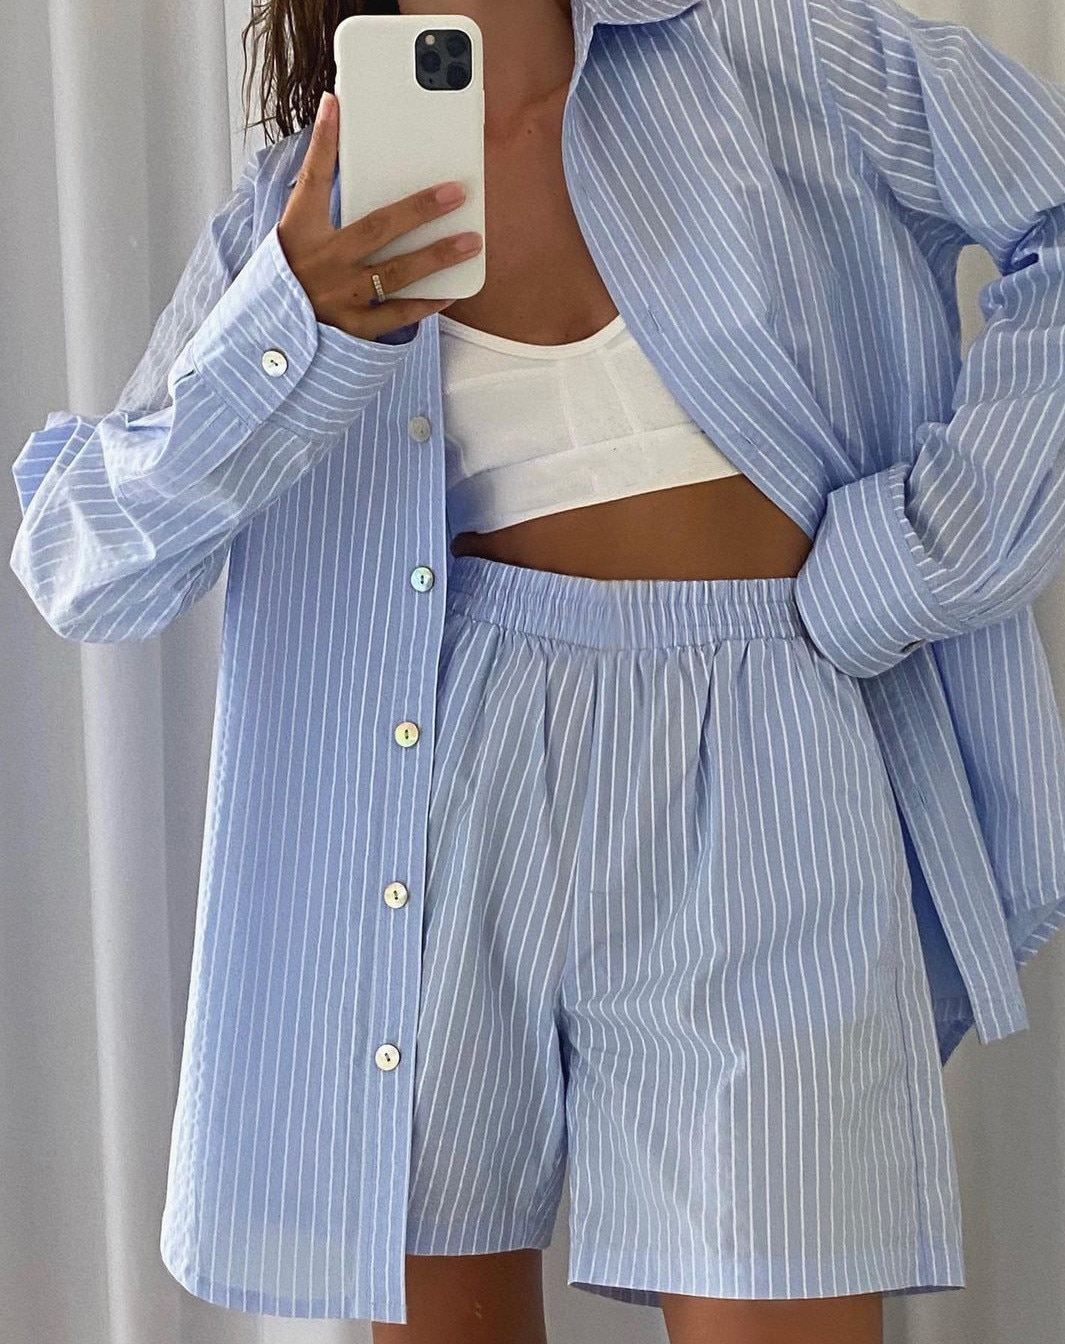 Women Lounge Wear Tracksuit Casual Turn-down Collar Stripe Shirts Shorts Set Fashion Long Sleeve Loo